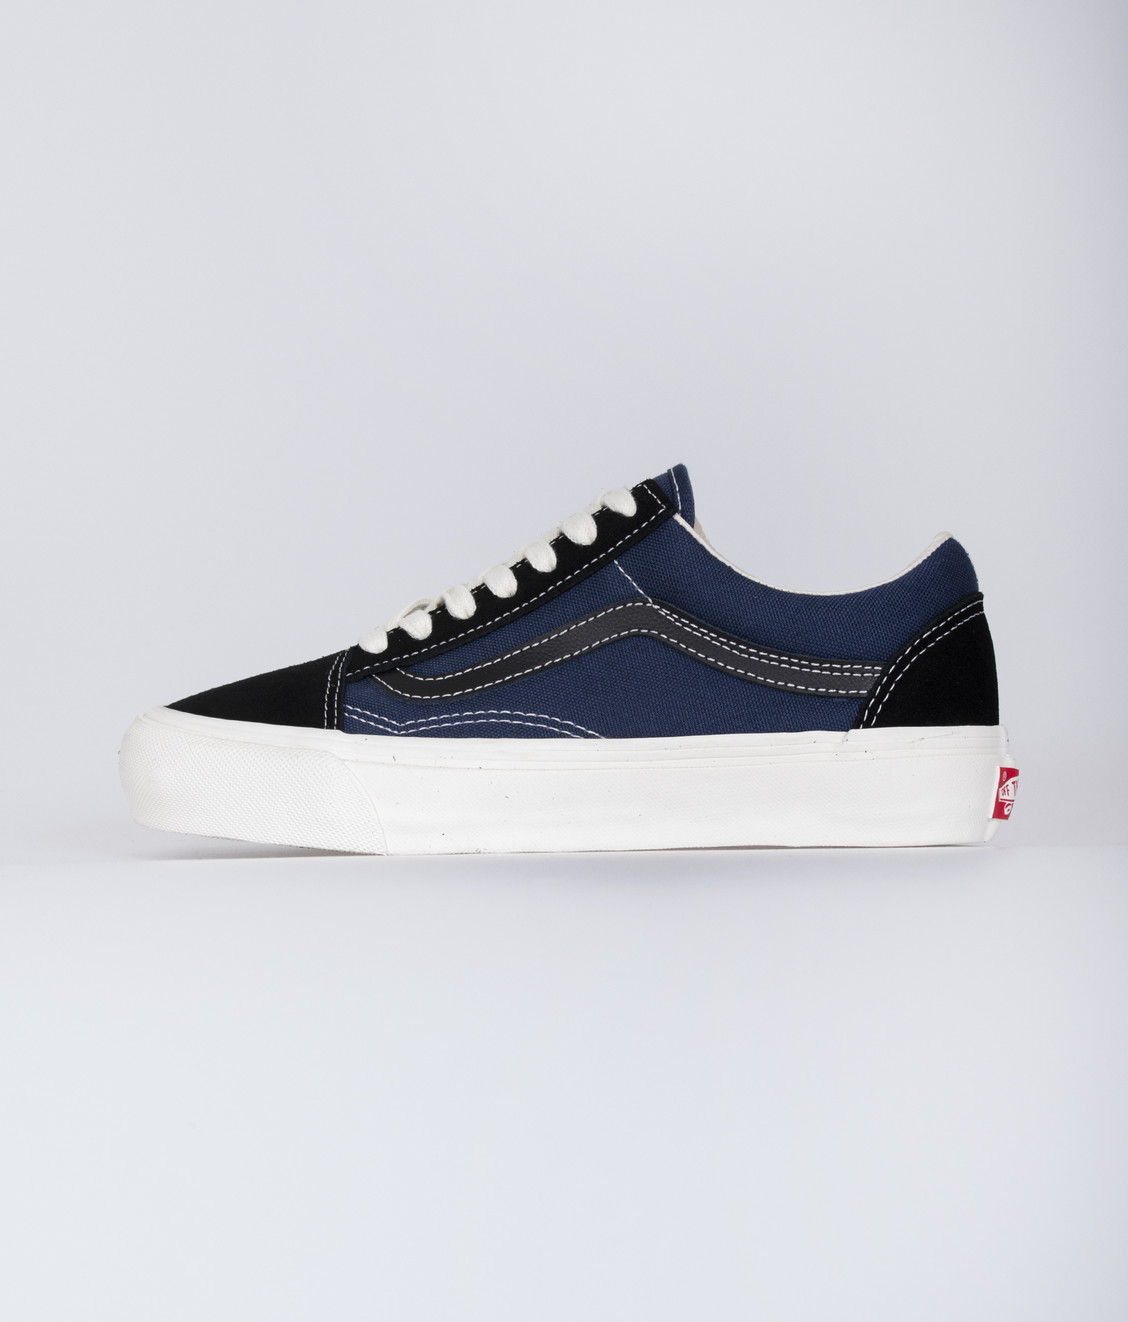 Vans Vans Vault Old Skool OG LX Black Navy